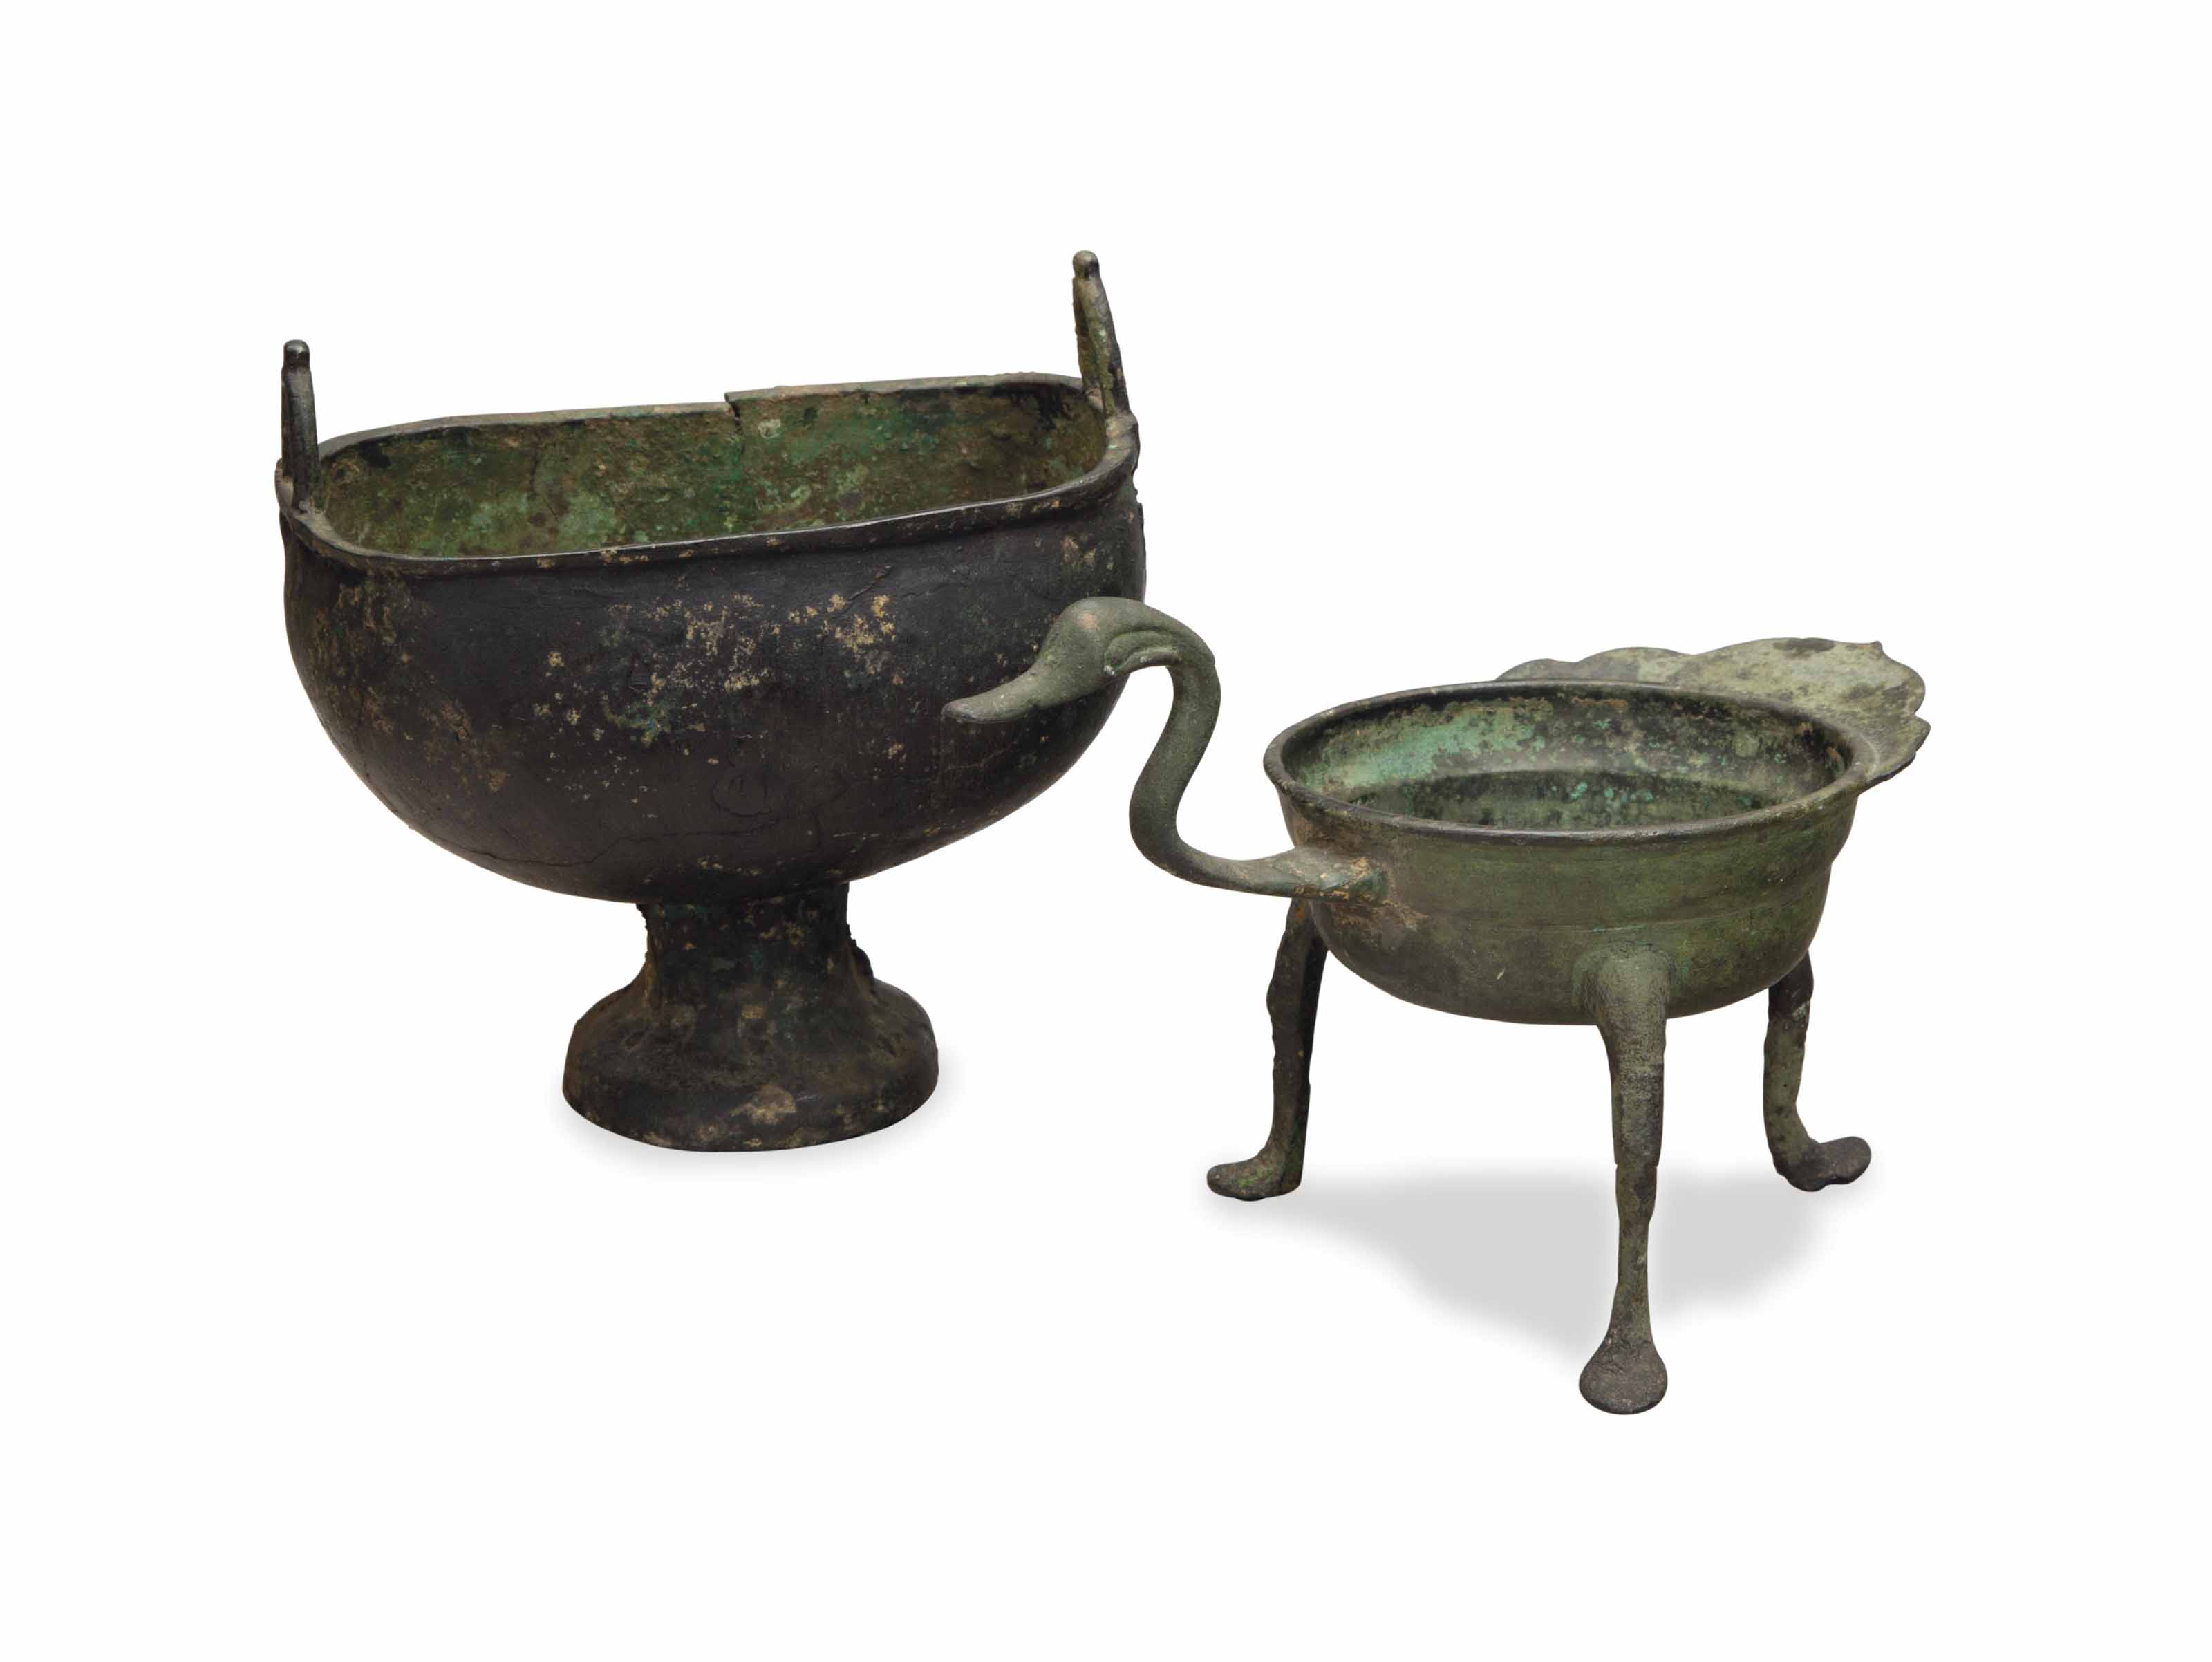 A CHINESE BRONZE FOOTED CAULDR